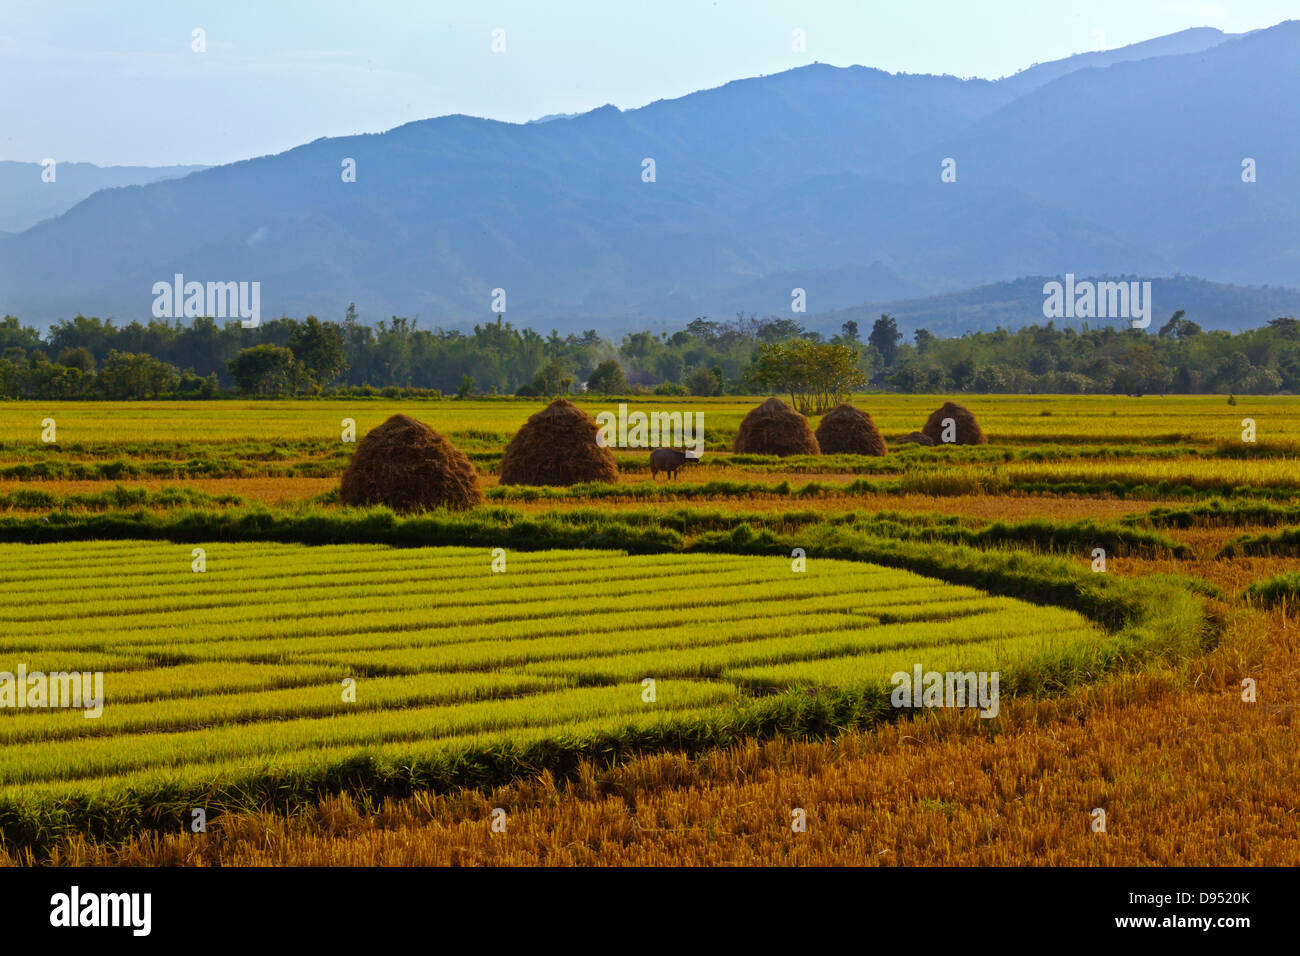 The fertile valley surrounding KENGTUNG or KYAINGTONG is used to grow RICE - MYANMAR Stock Photo